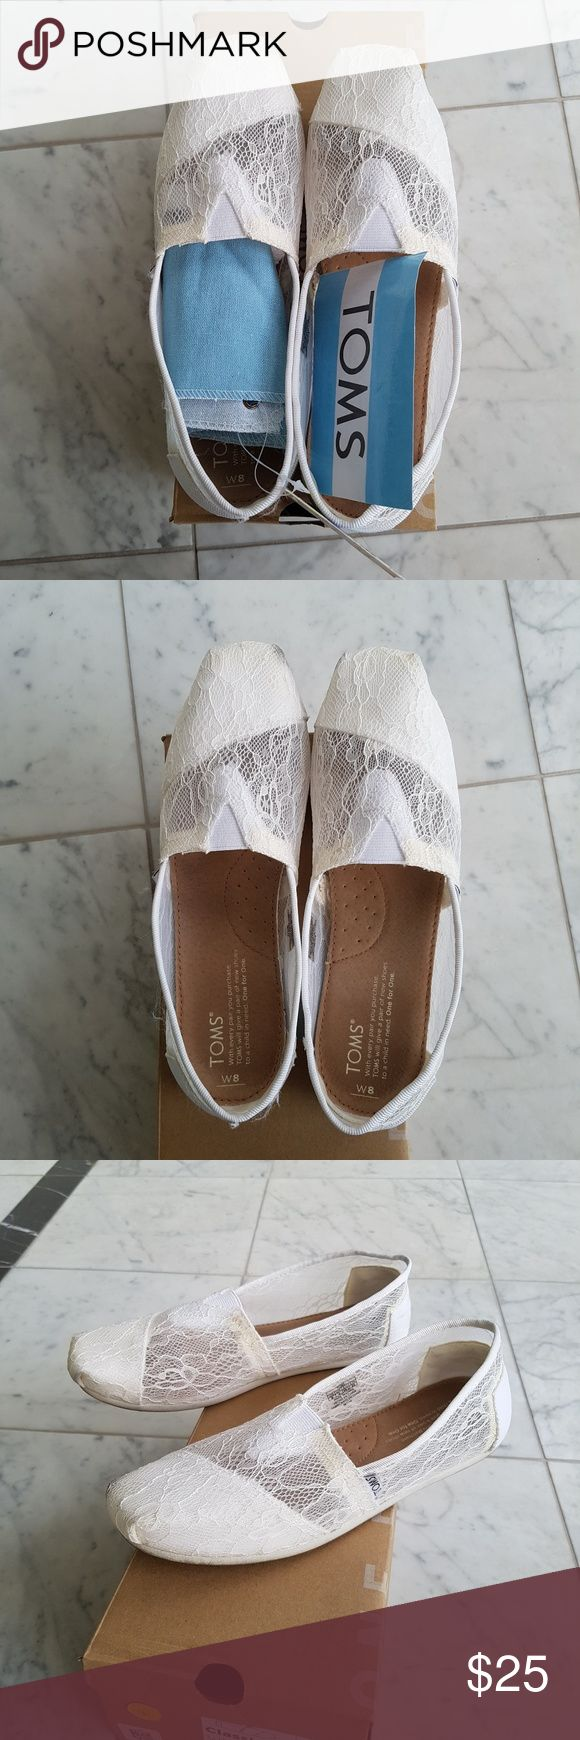 Classic White Lace TOMS Women's Size 8. Worn twice. Comes in box with flag & sticker. Great for summer or makes an awesome comfortable wedding shoe! TOMS Shoes